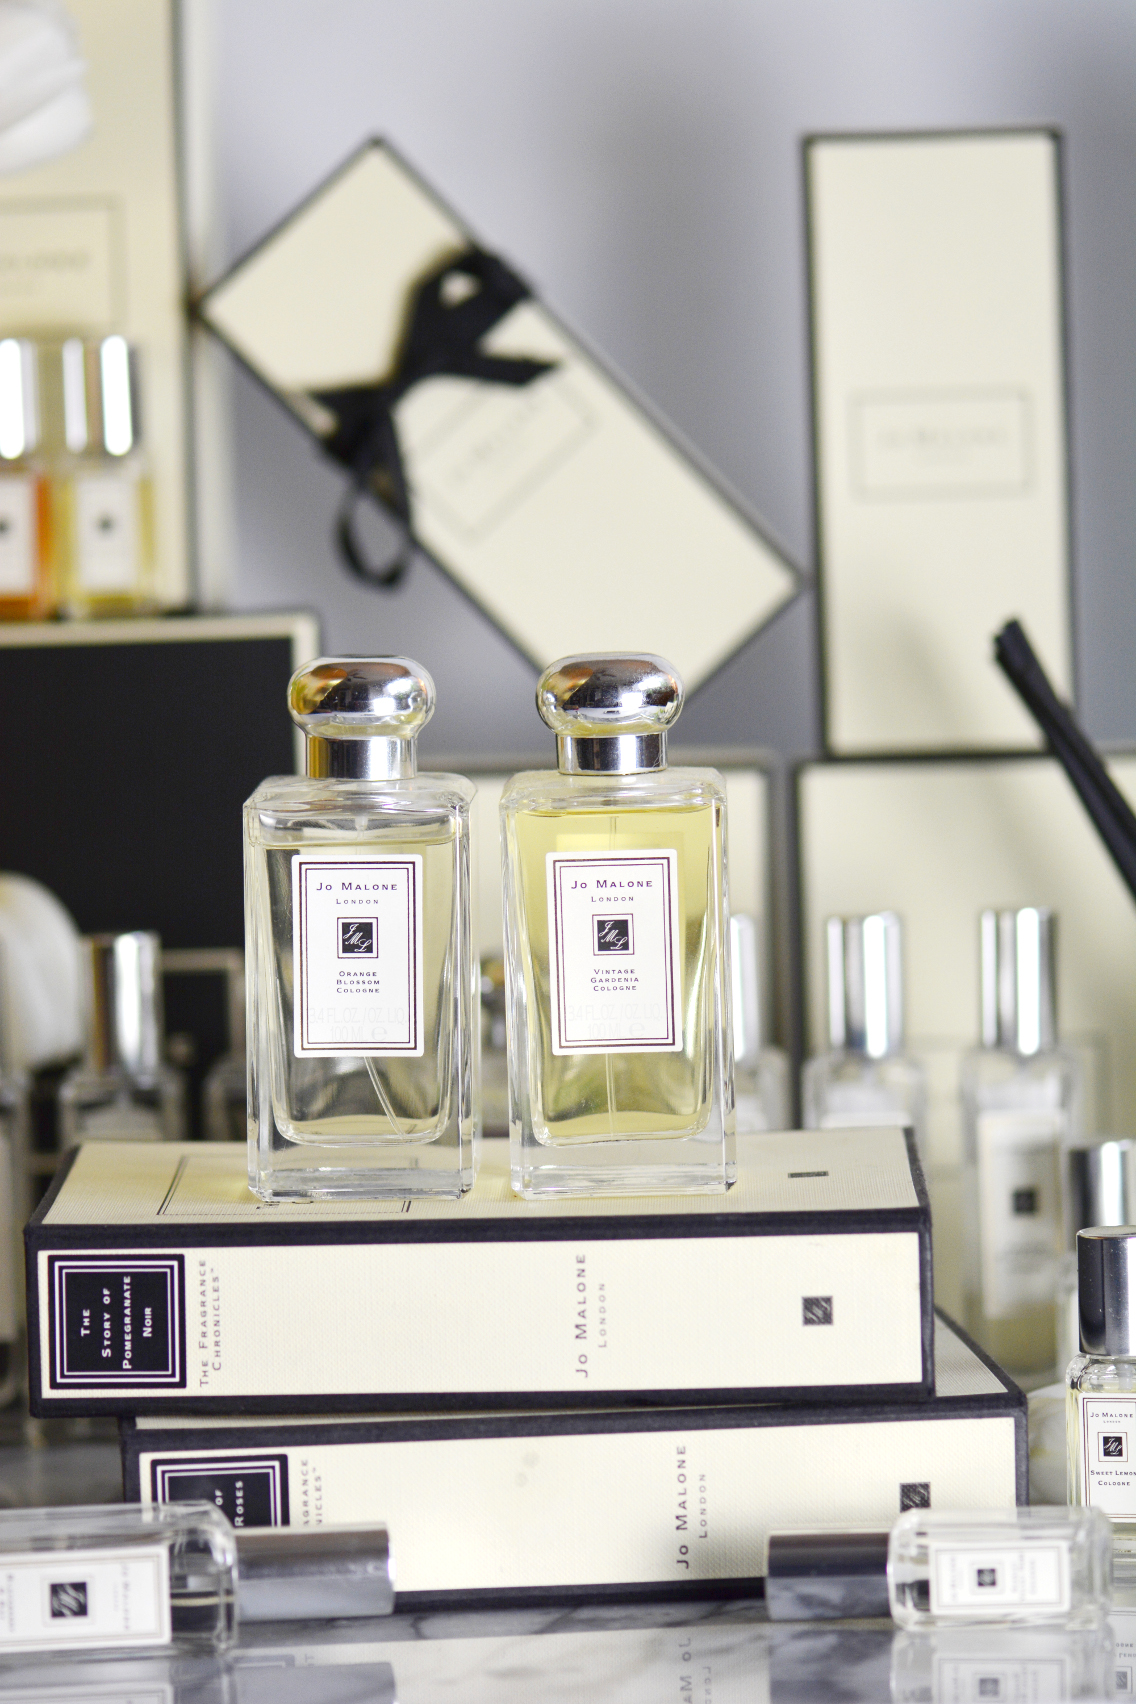 My 2015 Jo Malone London Cologne Collection 2